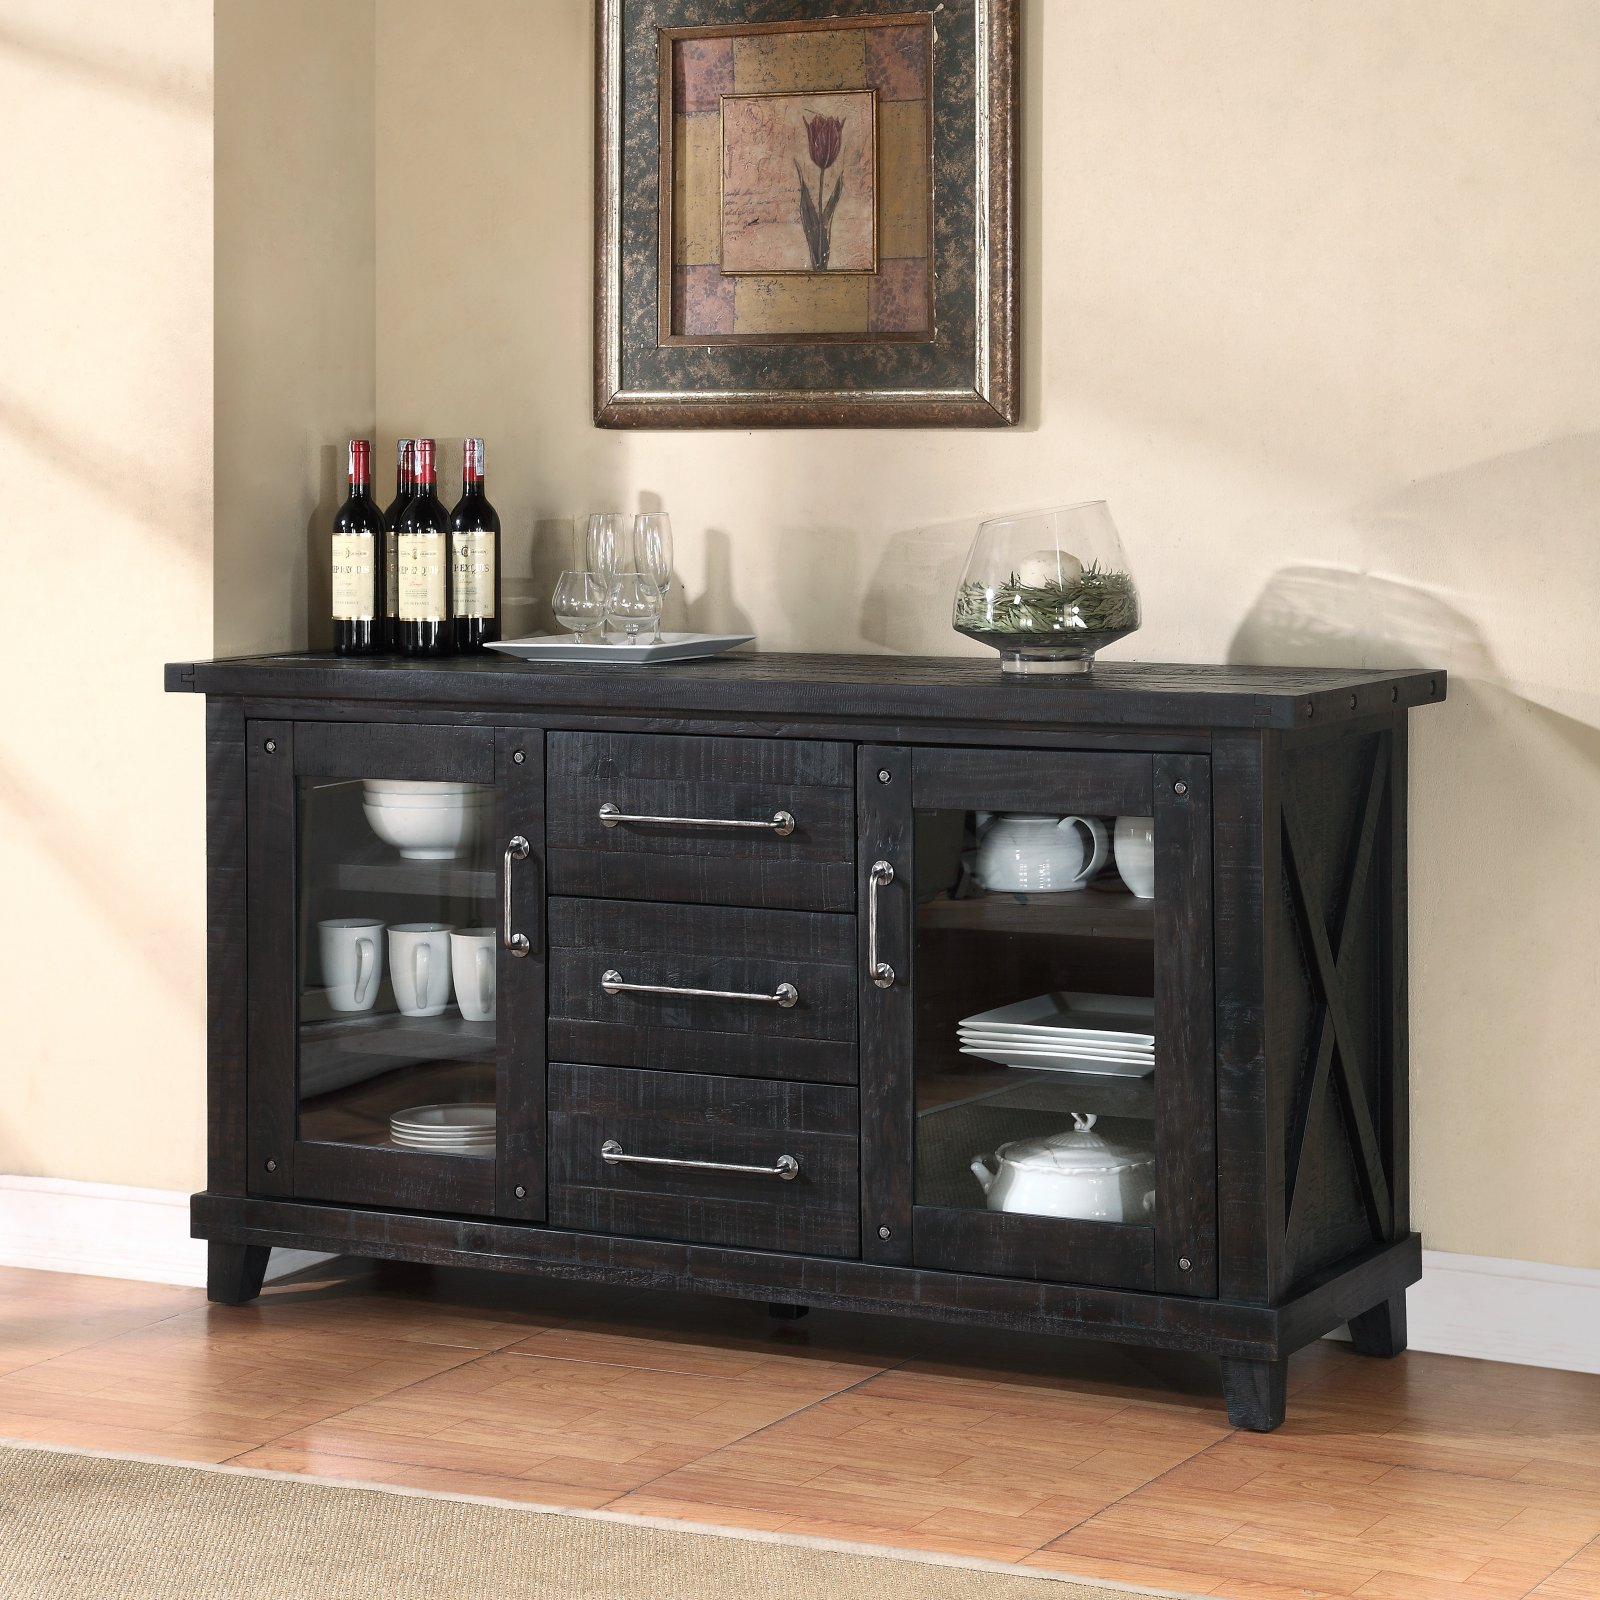 Modus Yosemite Solid Wood Sideboard - Cafe